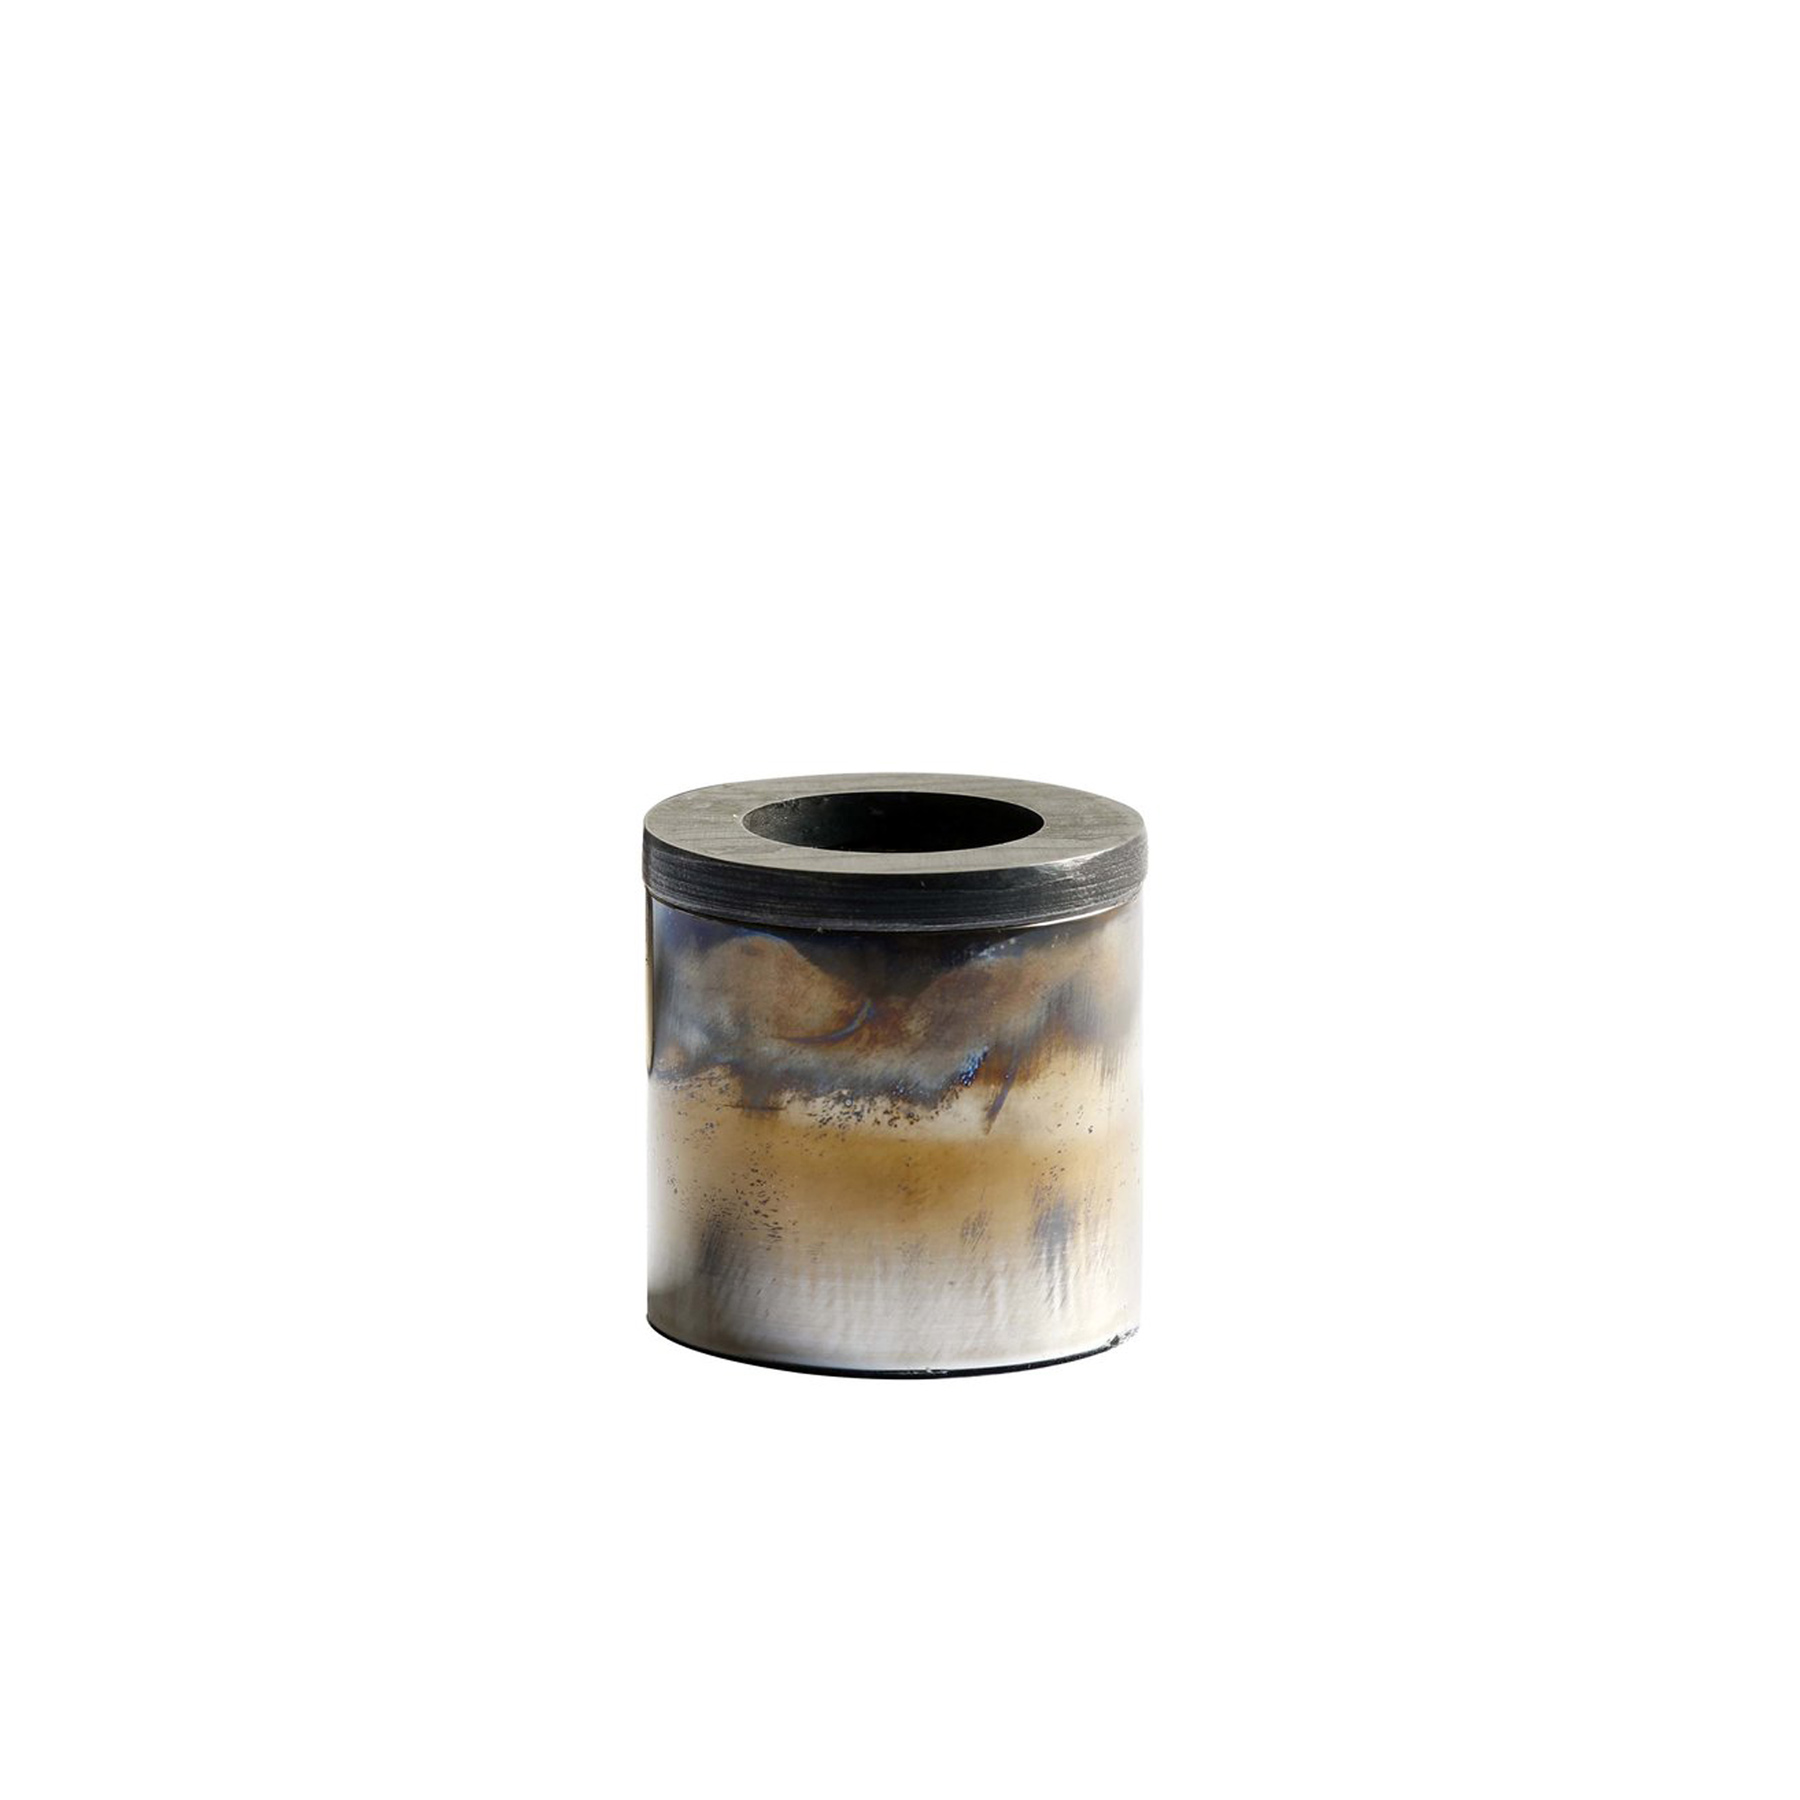 Damascus Candleholders - Candleholders in stainless steel, copper and brass, made by hand to order. The unique textures and colours are obtained by exposing the external part of the cylinder structure to a naked flame. They can be sold on their own or as a beautiful set.   | Matter of Stuff